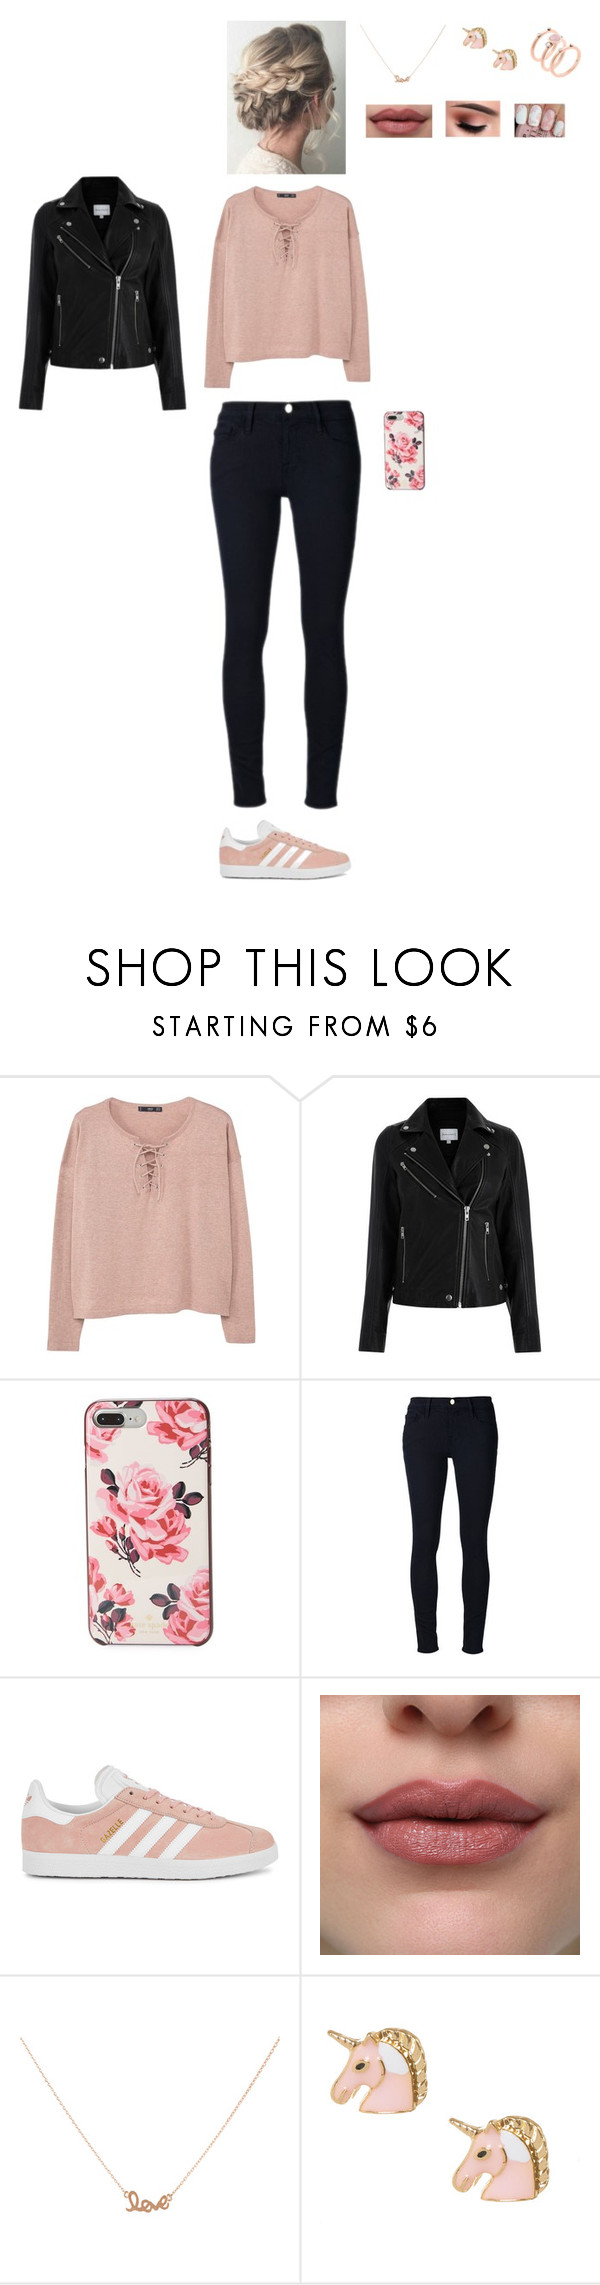 """""""All about pink 🌸🌸🌸"""" by leacousty55 ❤ liked on Polyvore featuring MANGO, Kate Spade, Frame, adidas Originals, Accessorize and Michael Kors"""